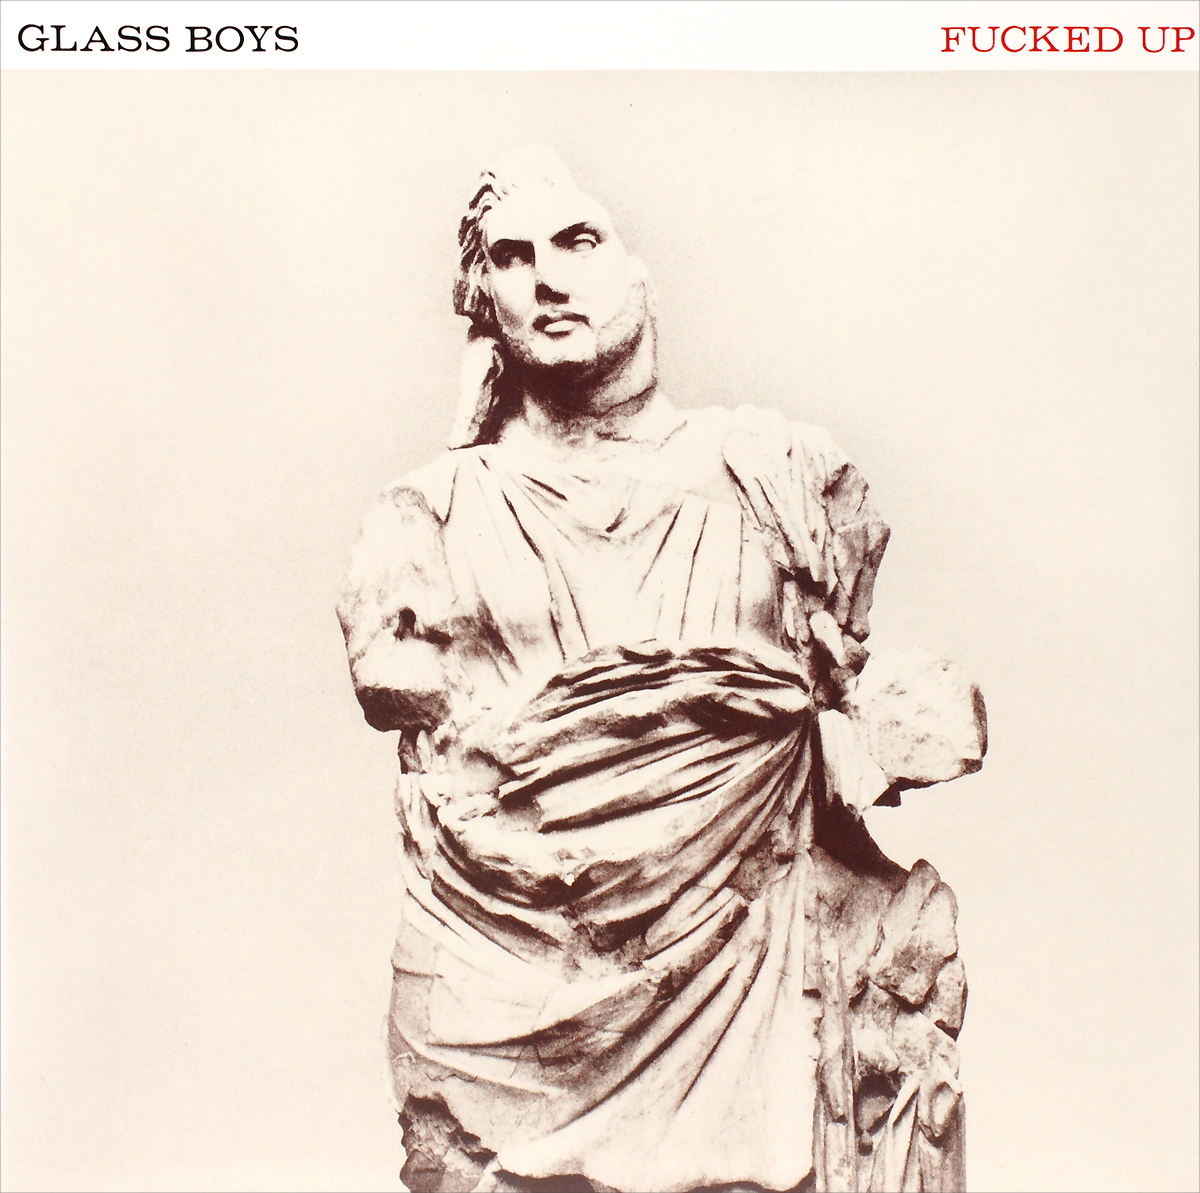 Fucked Up Fucked Up. Glass Boys (2 LP) lp 15 v 1 6